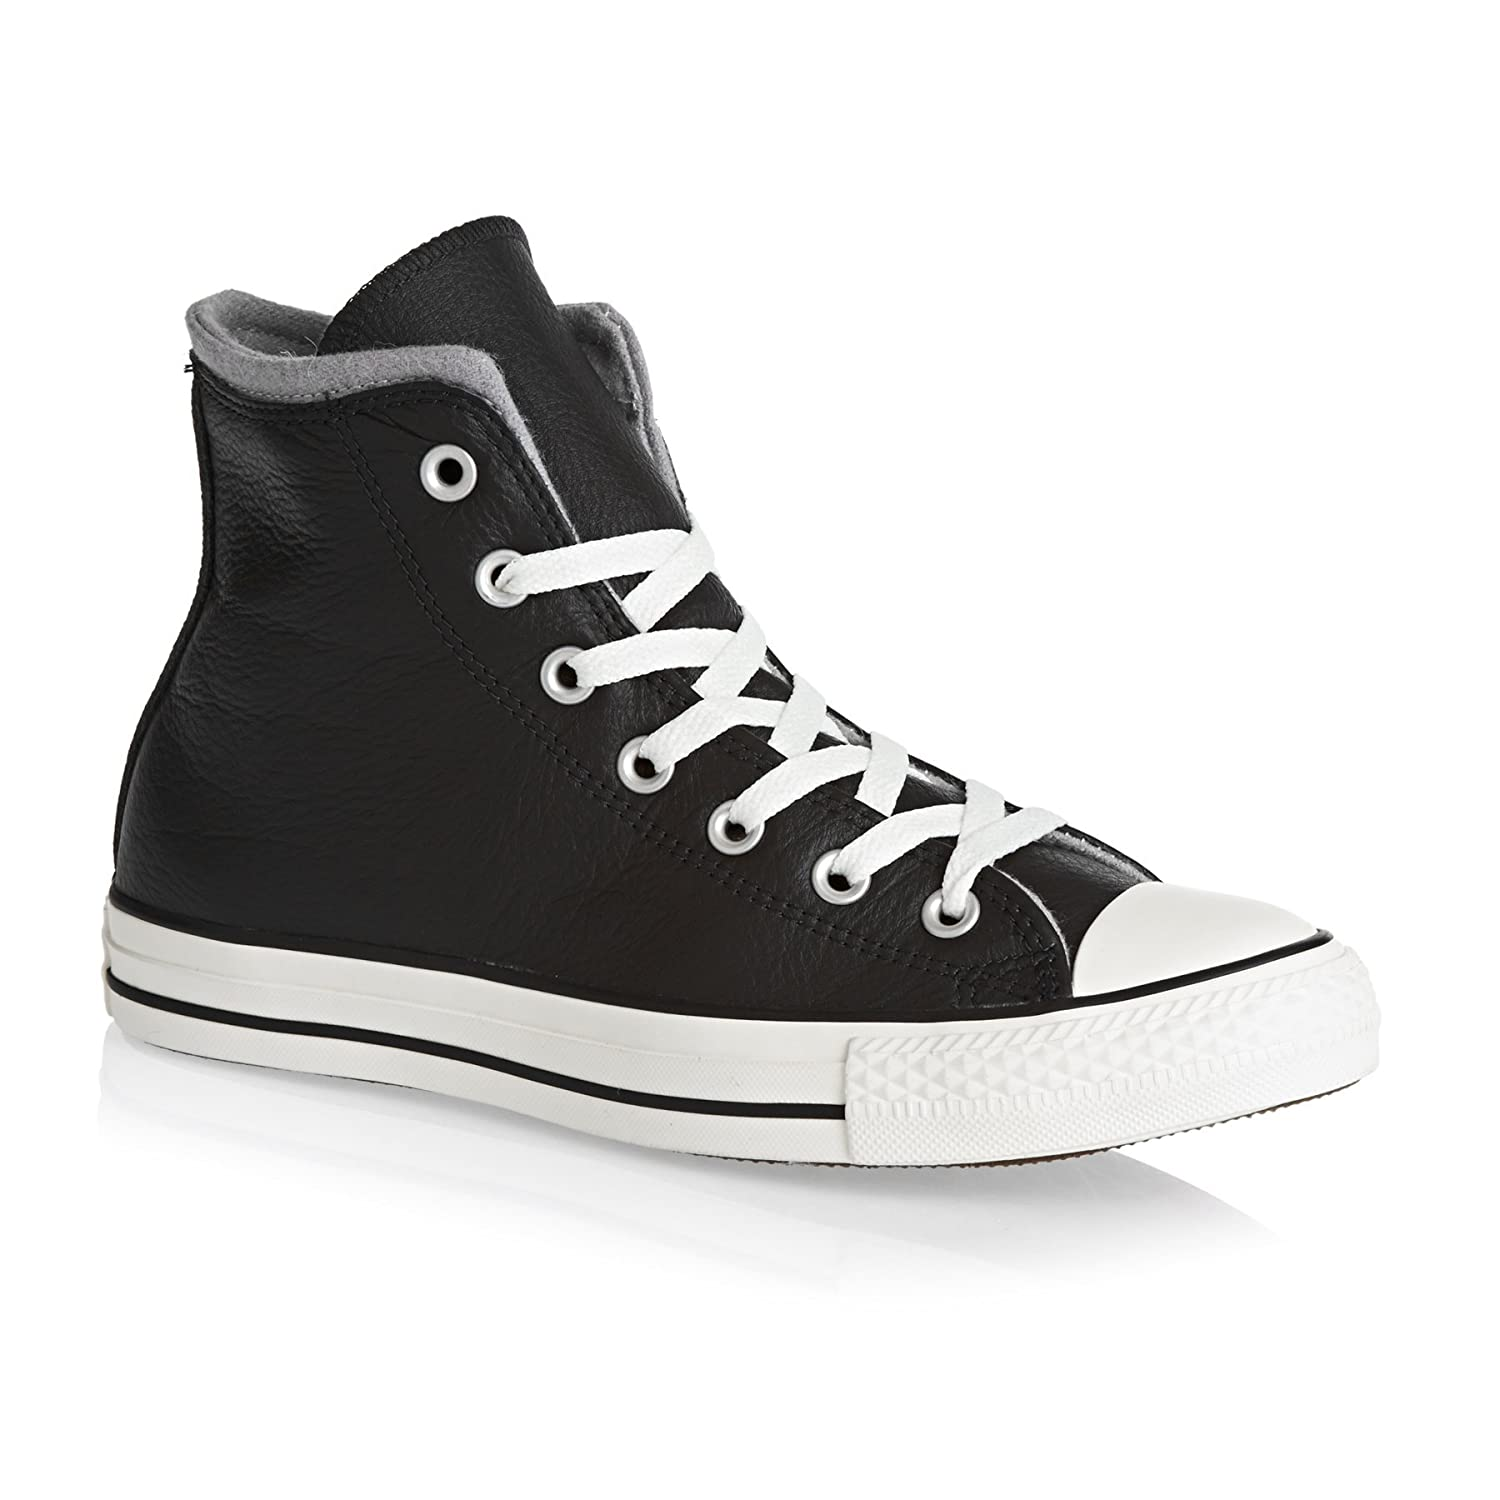 Converse Chuck Taylor All Star Core Hi B01M8I9BUW 10 M US Women / 8 M US Men|Black / Egret / Dolphin